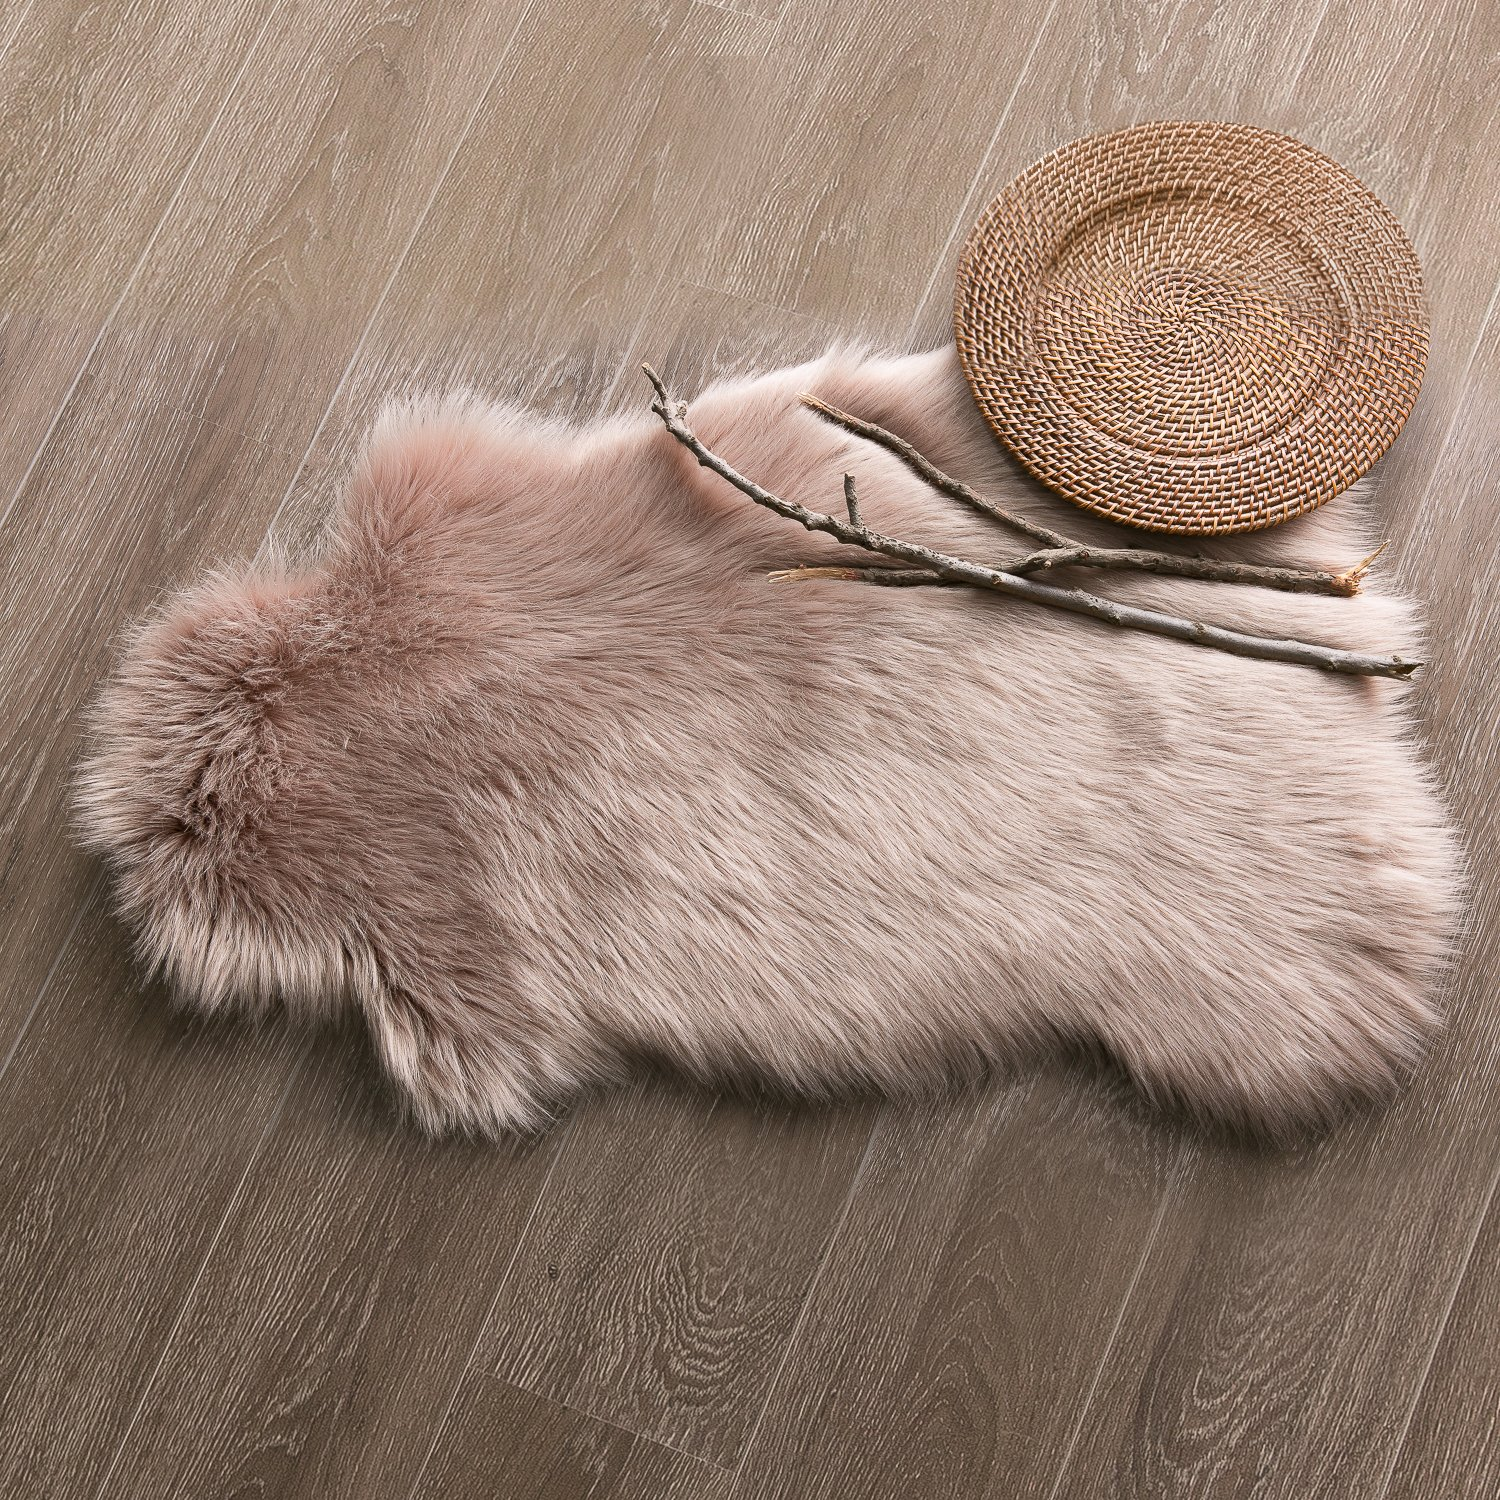 Rugs : Online Shopping For Clothing, Shoes, Jewelry, Pet